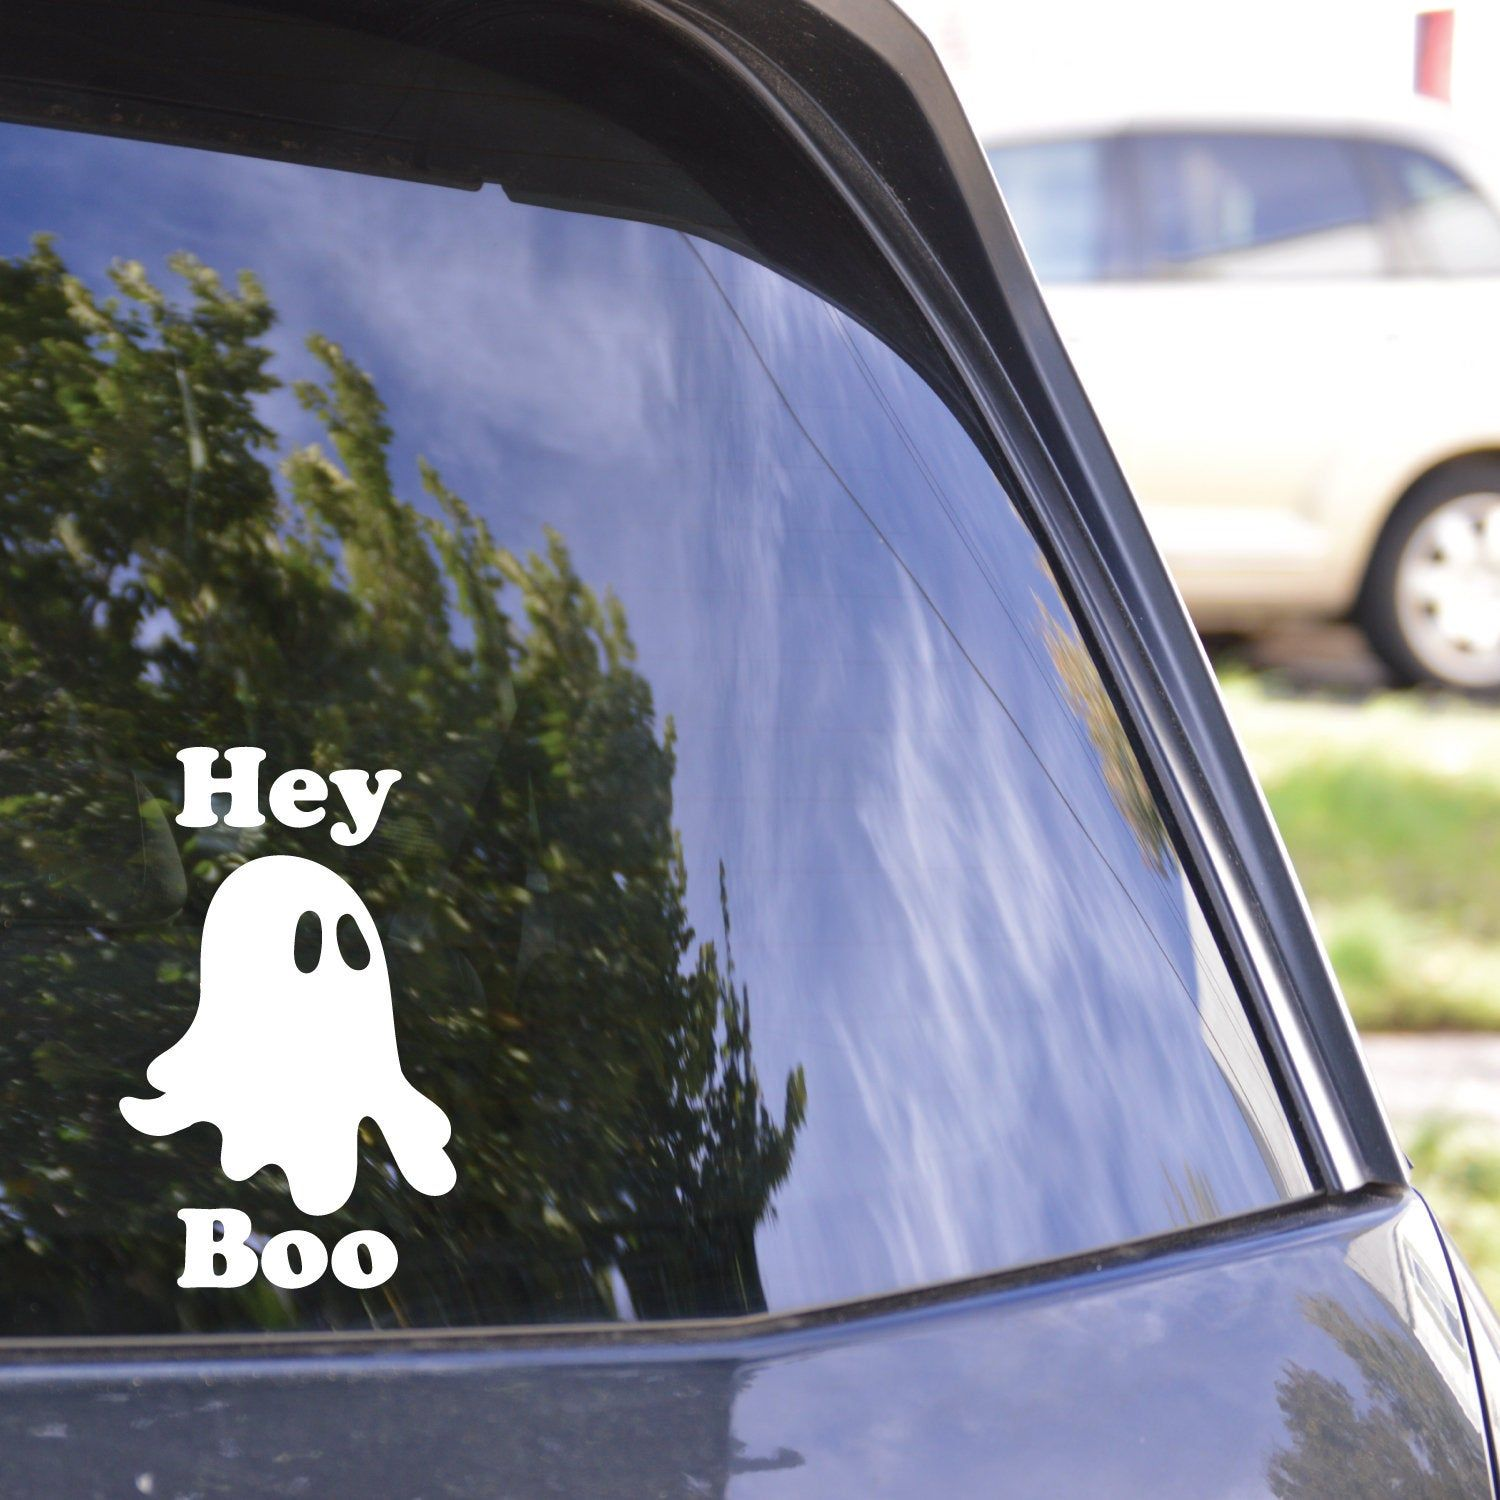 Hey Boo Decal Ghost Decal Ghost Sticker Haunted Sticker Ghost Decals Ghost Stickers Halloween Deca Halloween Decals Nature Decal Halloween Stickers [ 1500 x 1500 Pixel ]